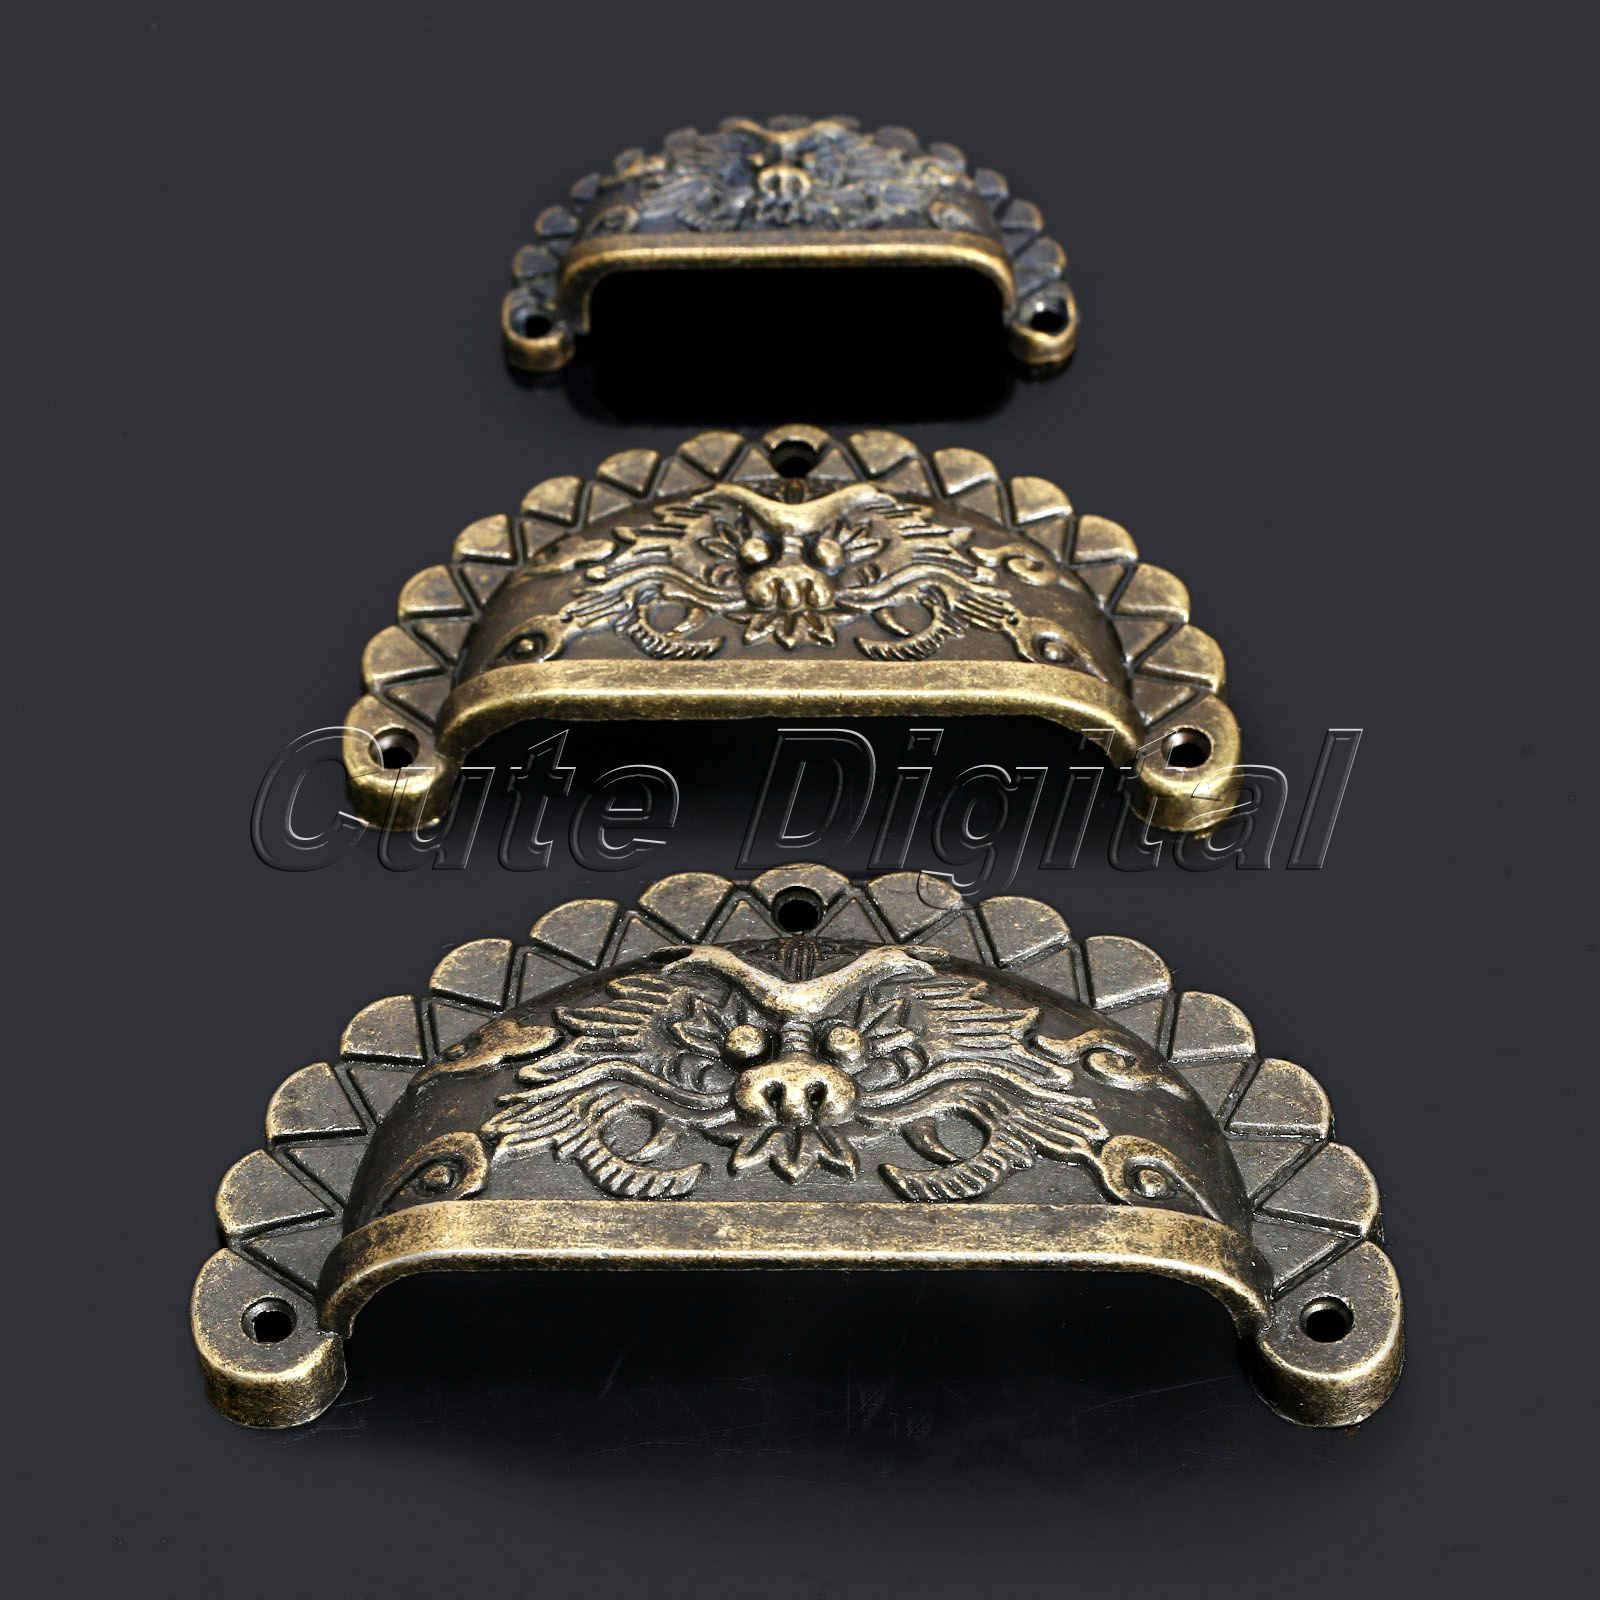 4Pcs Antique Furniture Handles Knobs And Pulls For Cabinet Dragon Shell  Knobs Dresser Drawer Door Pull Handle Cupboard Handle In Cabinet Pulls From  Home ...